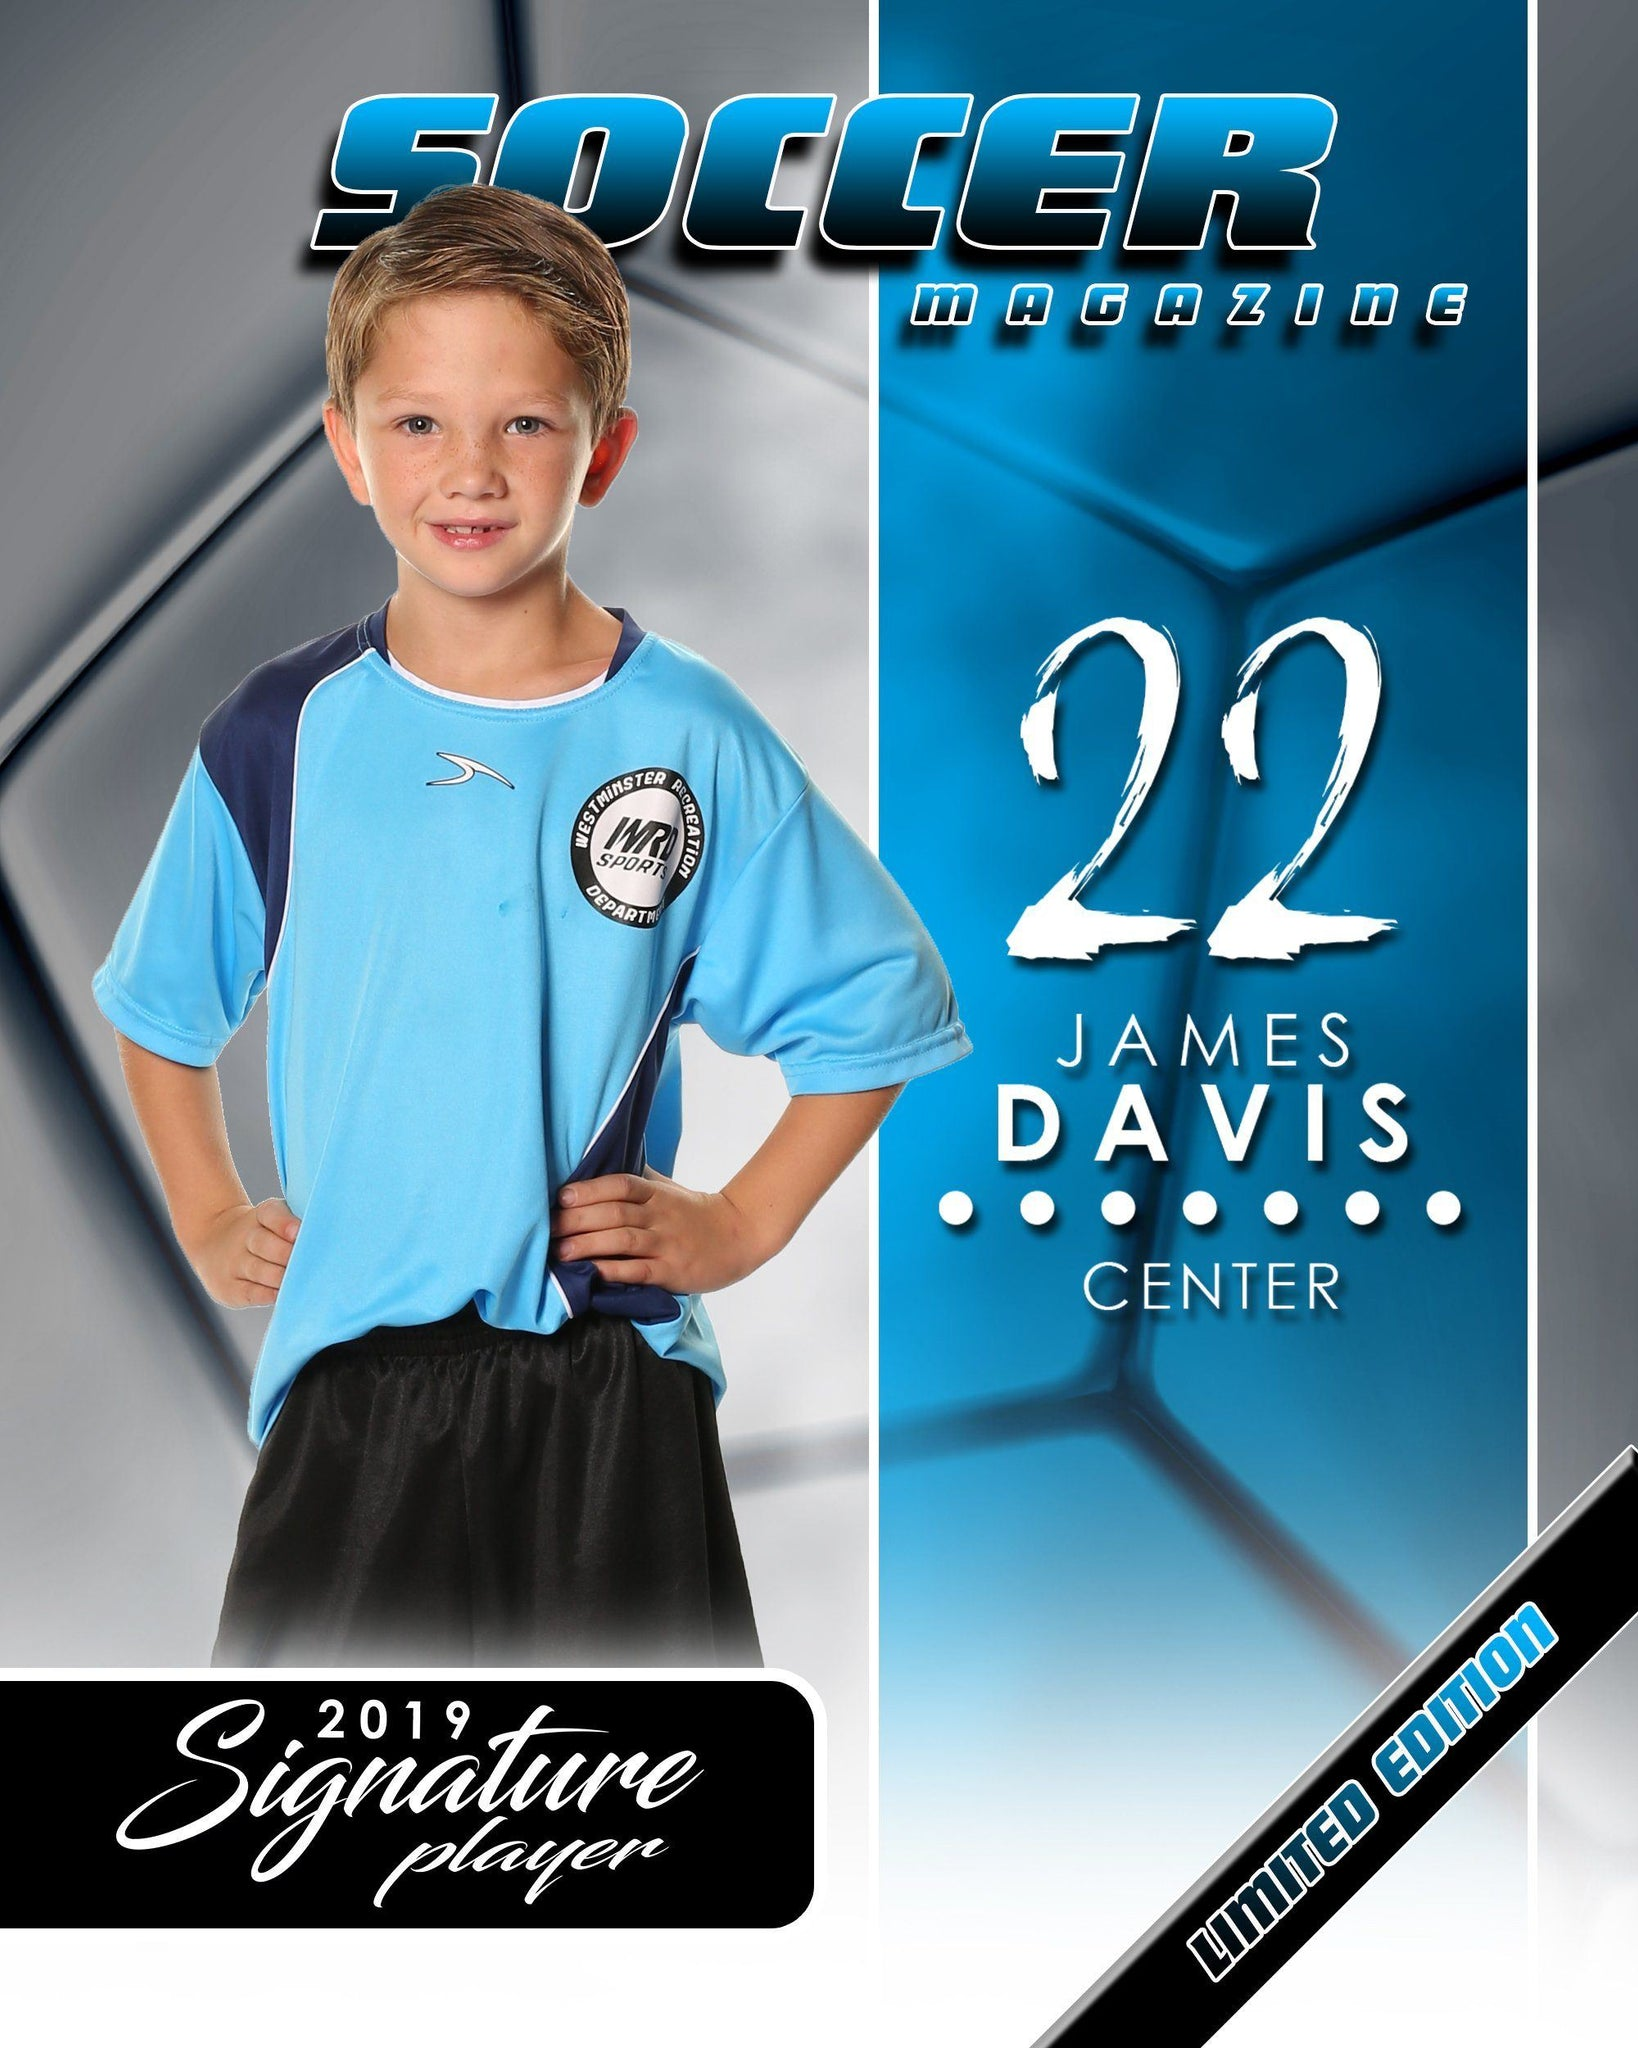 Signature Player - Soccer - V1 - Extraction Magazine Cover Template-Photoshop Template - Photo Solutions